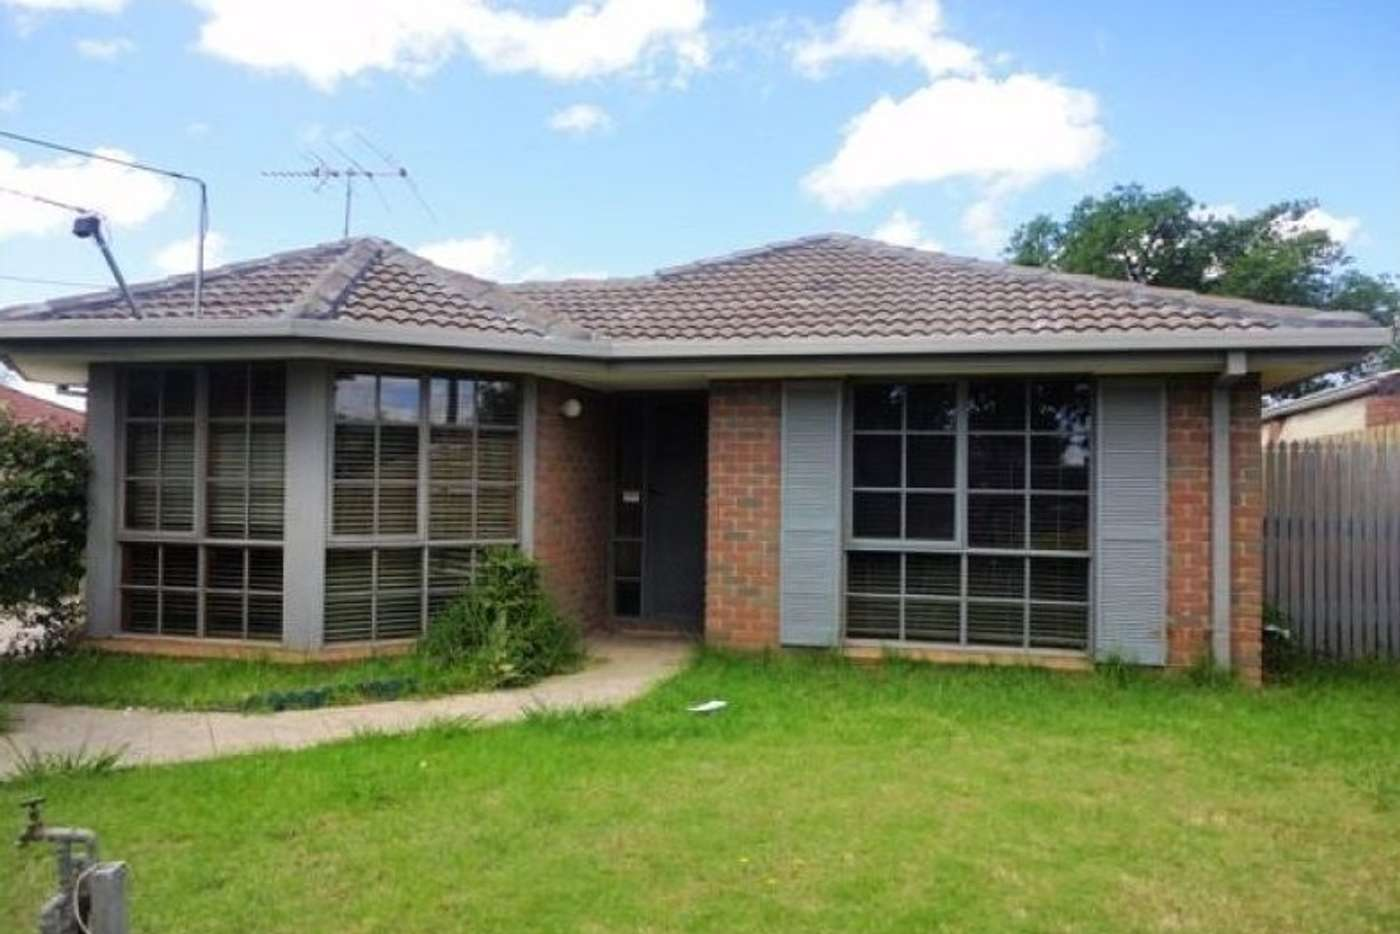 Main view of Homely house listing, 11 Clendon Court, Hoppers Crossing VIC 3029